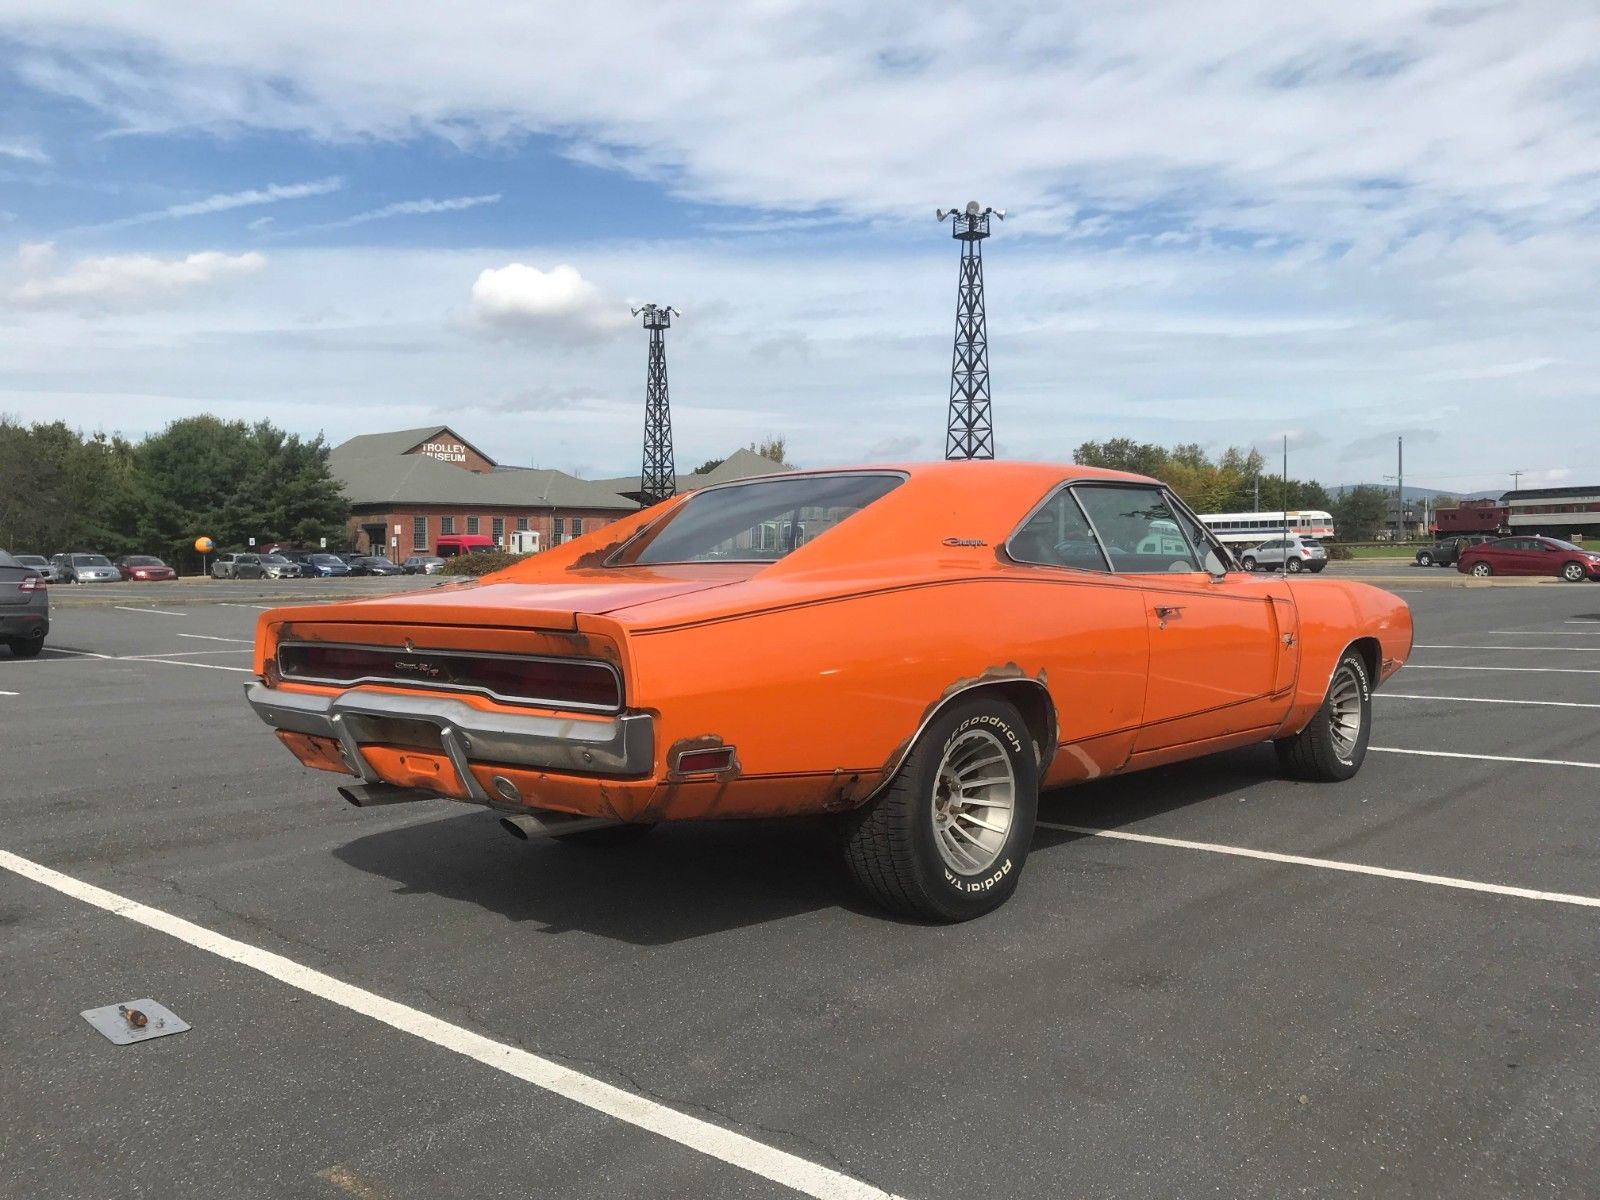 This Rare 1970 Dodge Charger R/T Was Found in a Barn Under a